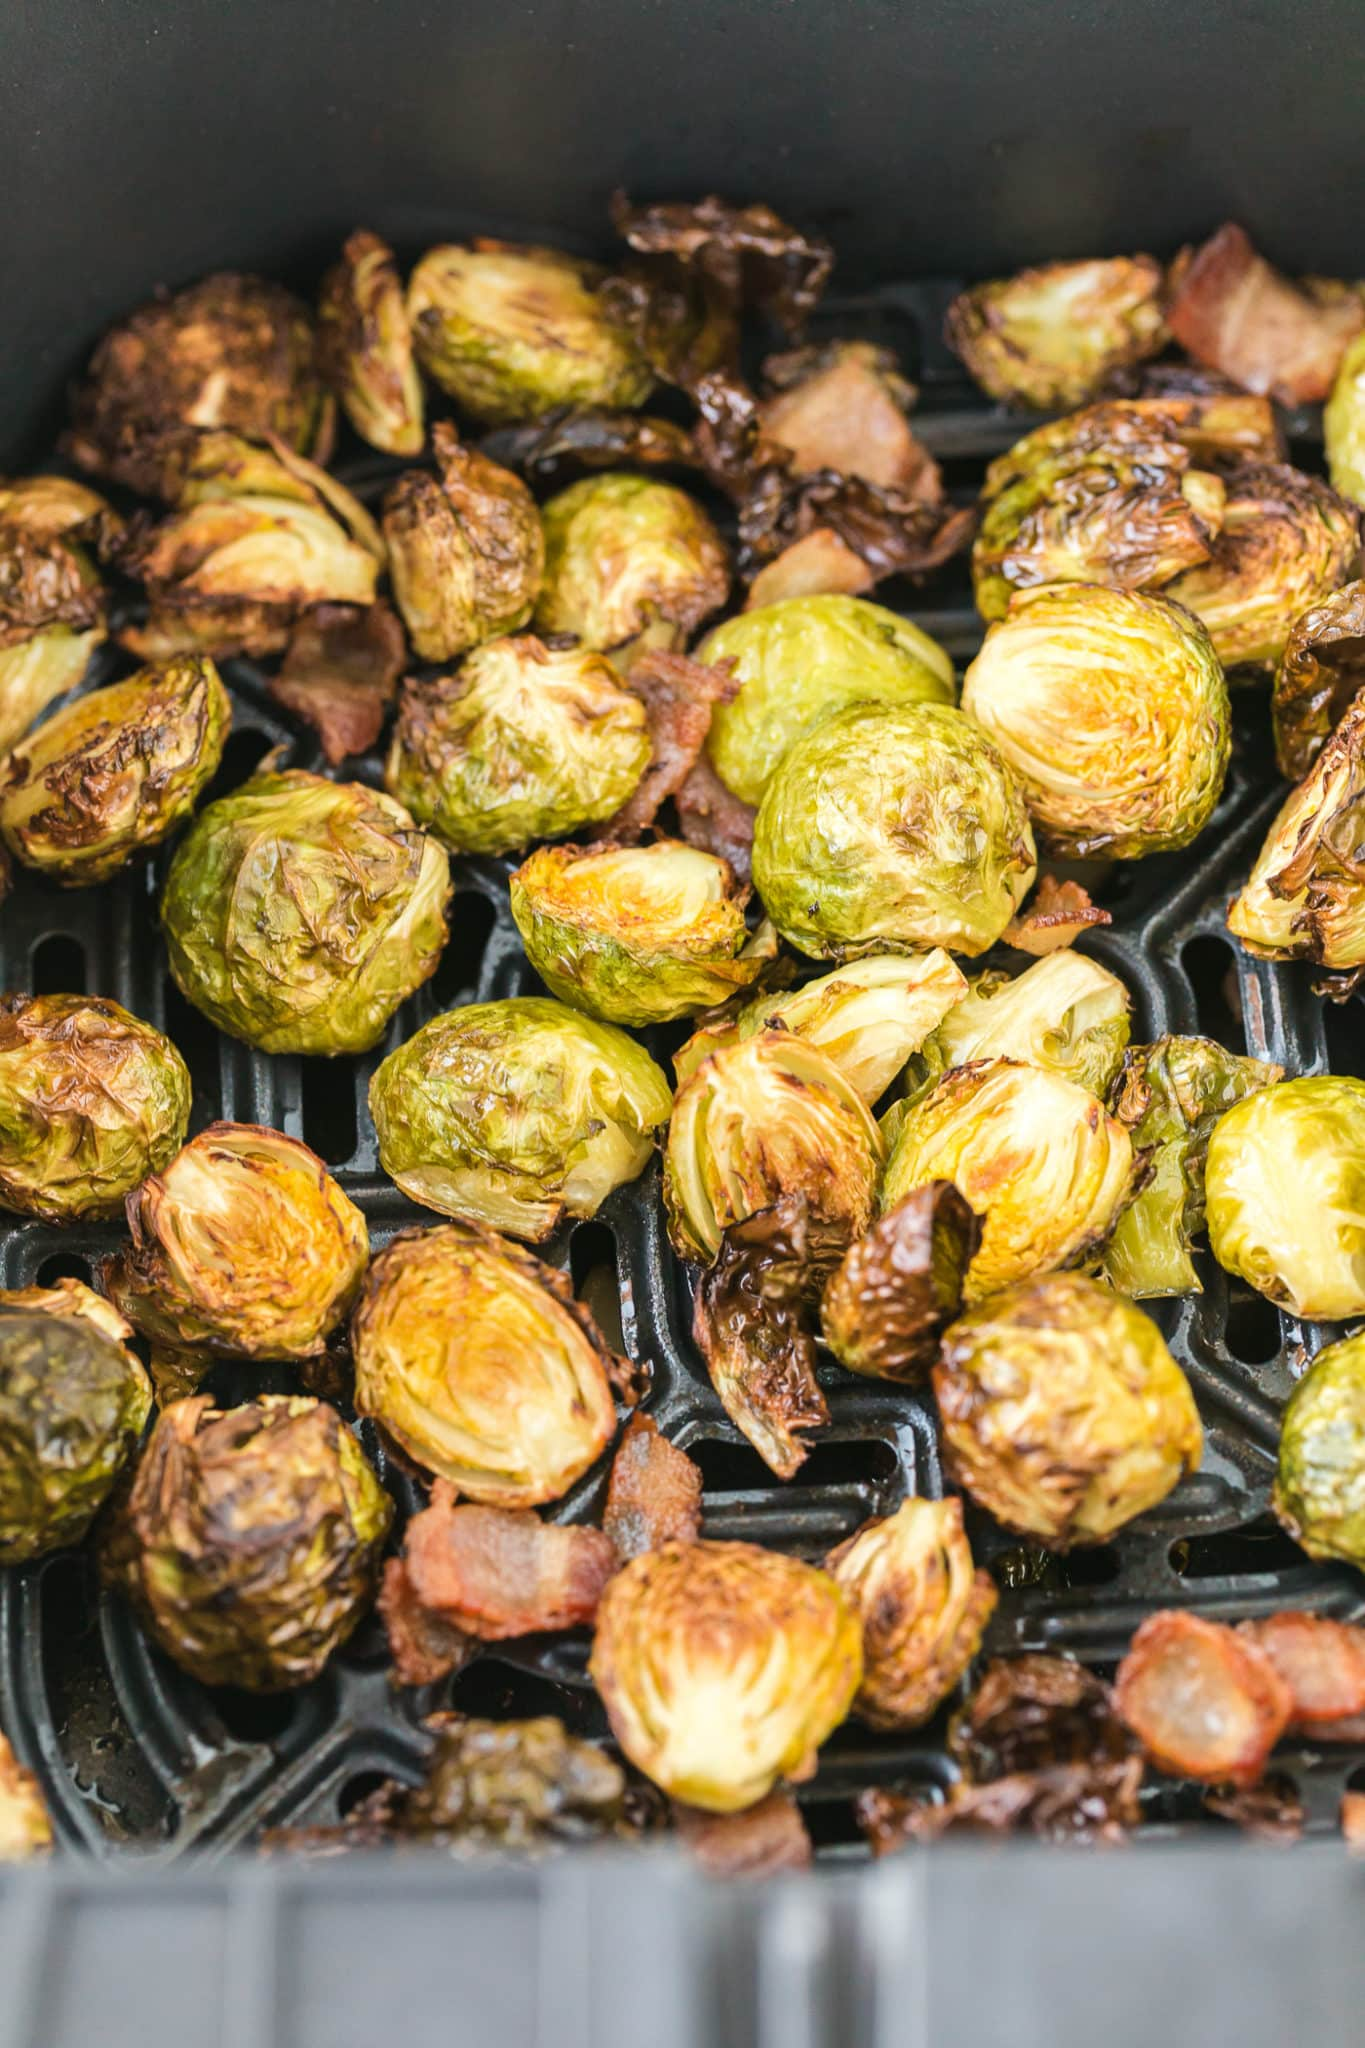 cooked brussels sprouts in an air fryer